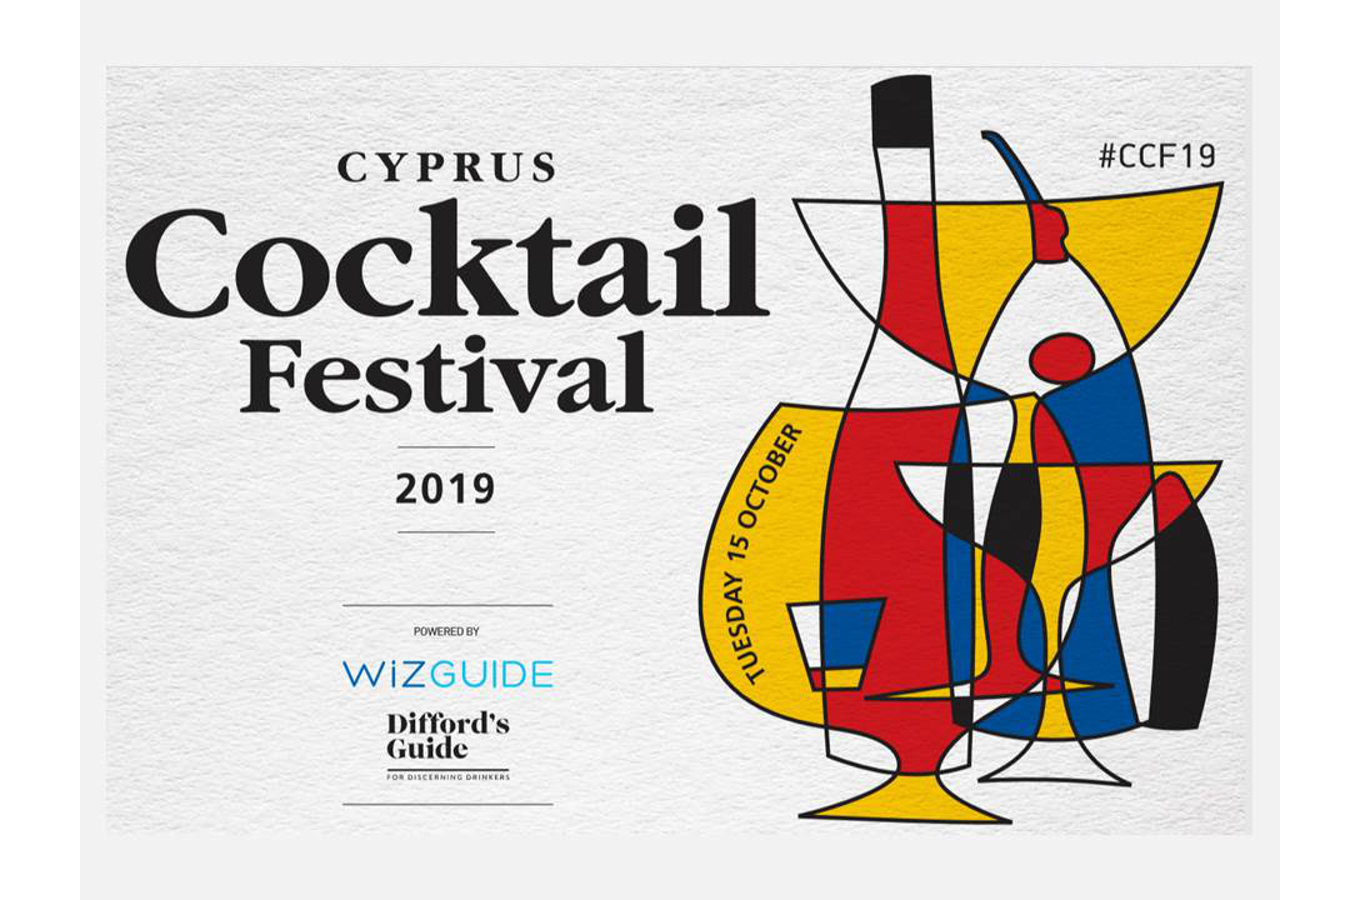 Cyprus Cocktail Festival image 1